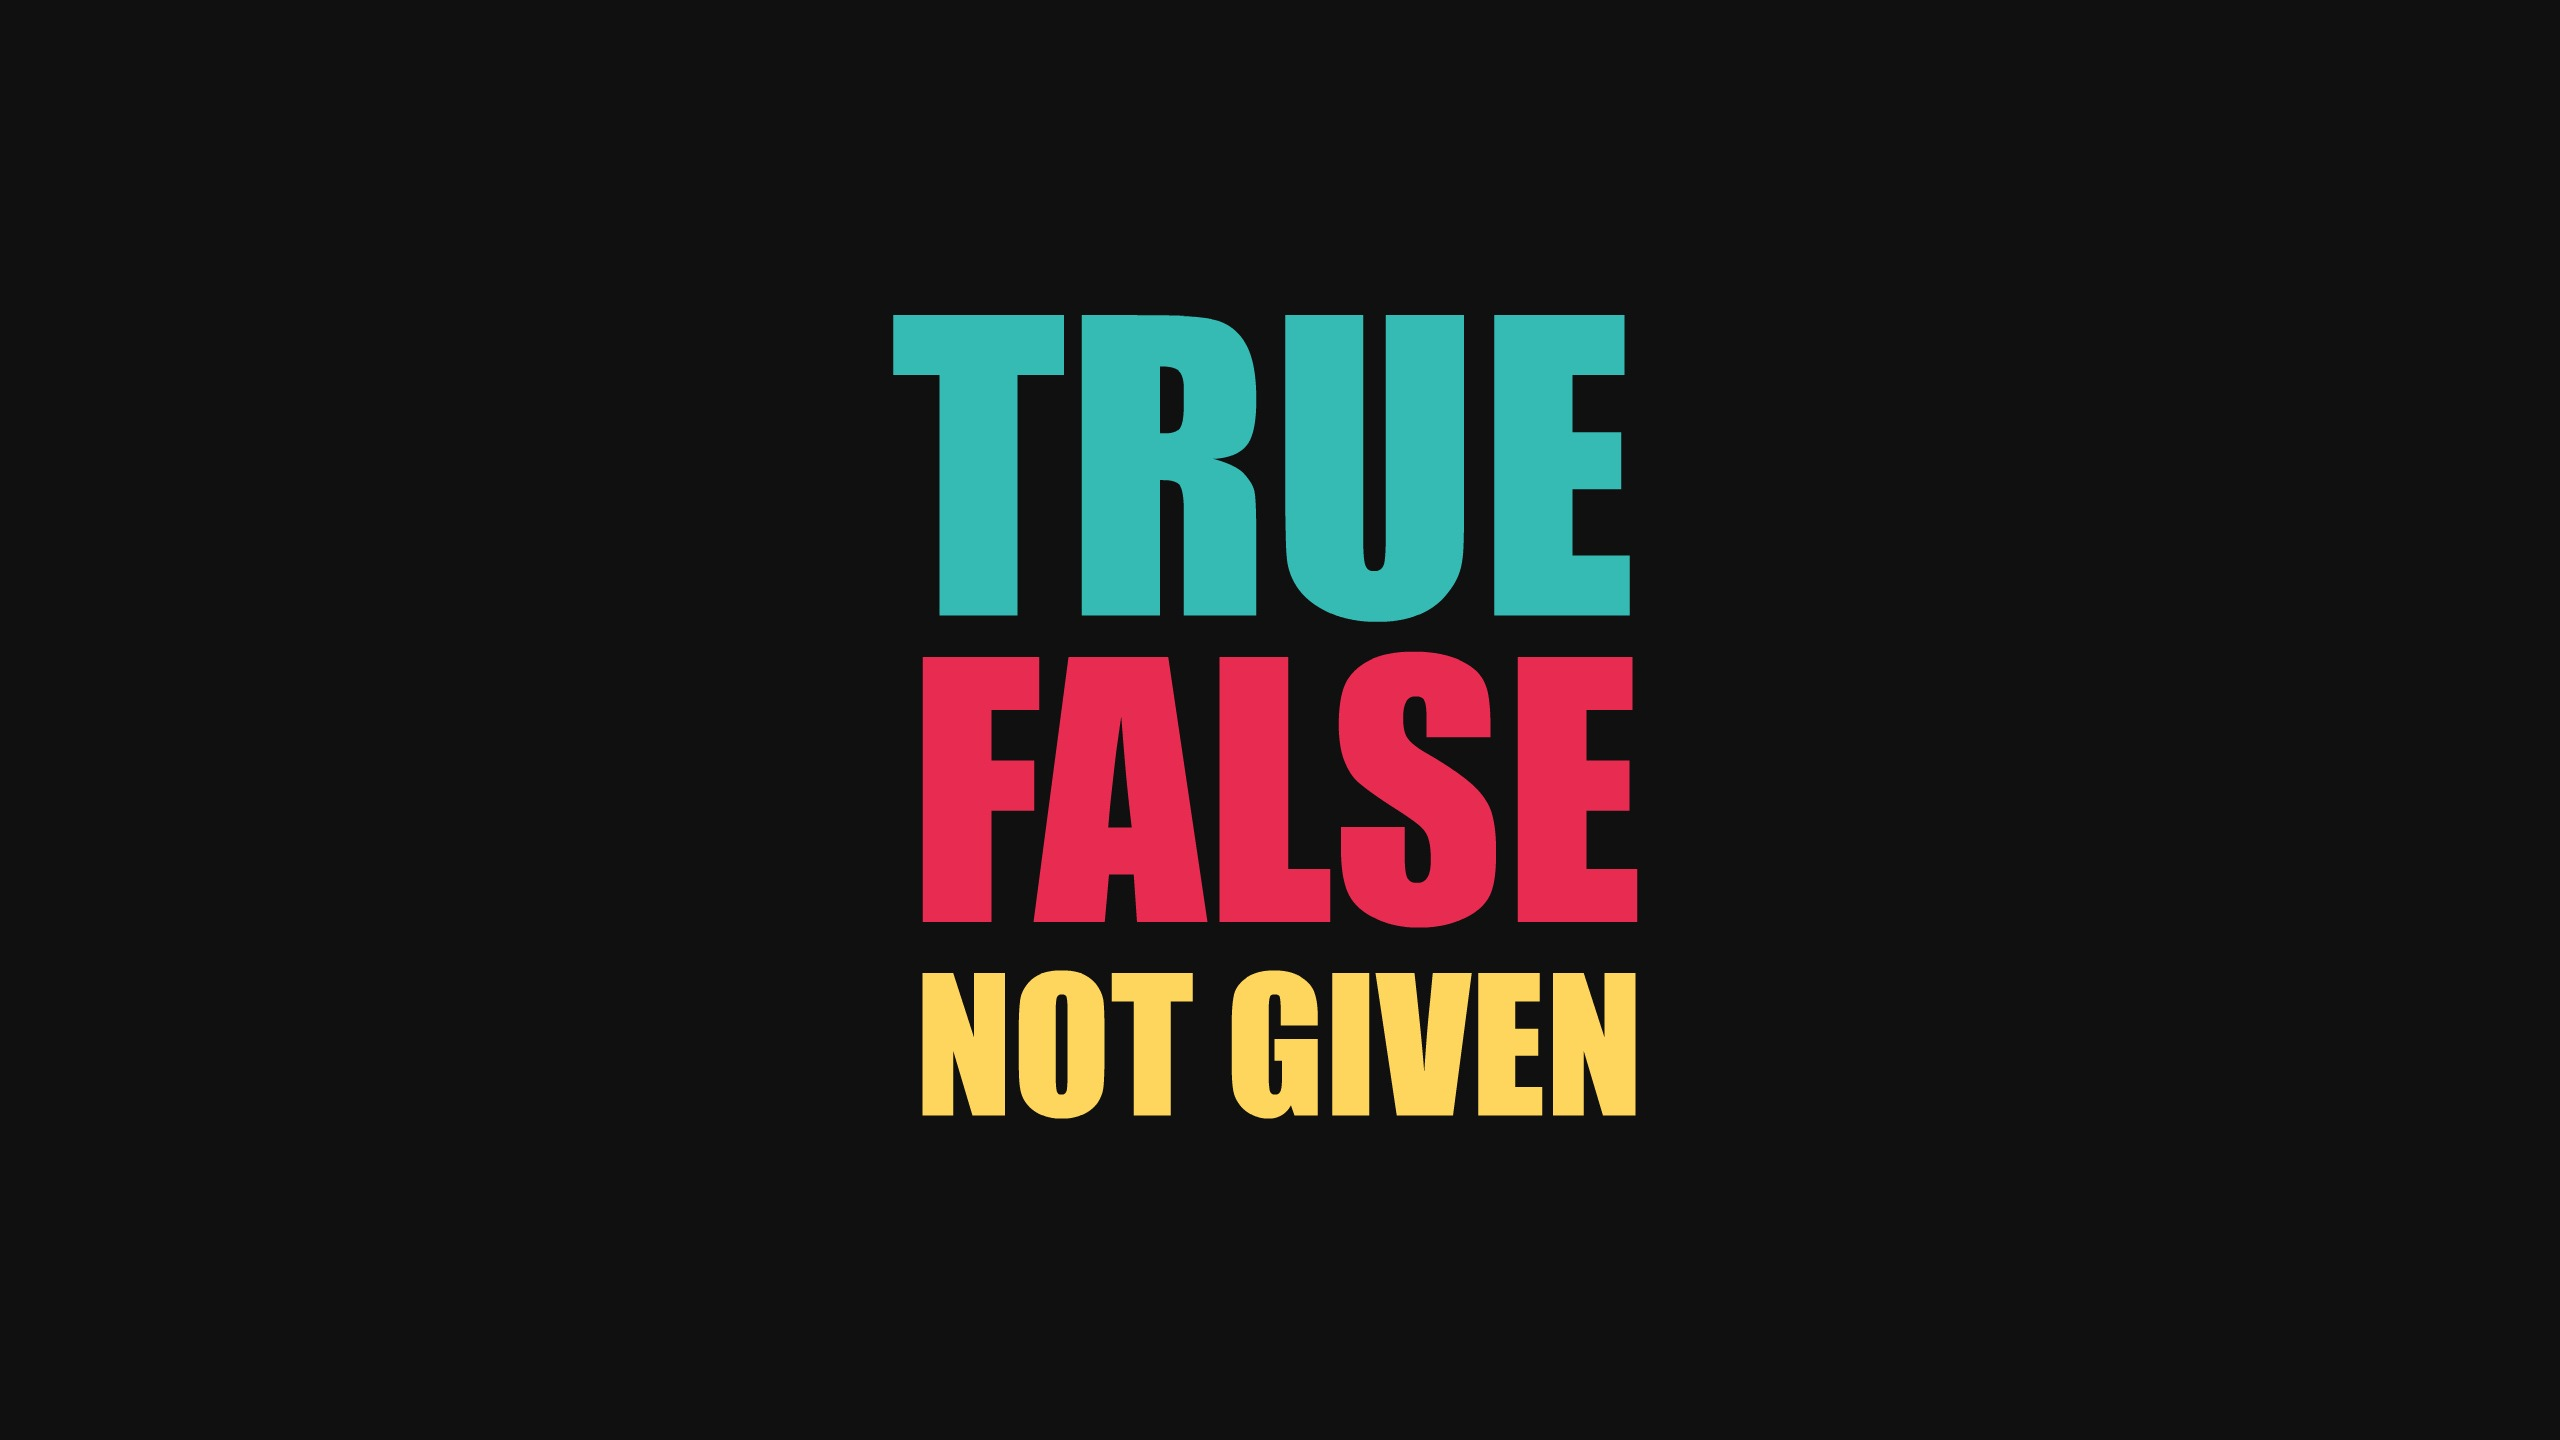 The words True, False and Not Given are written in bid blue, red and yellow letters on a black background